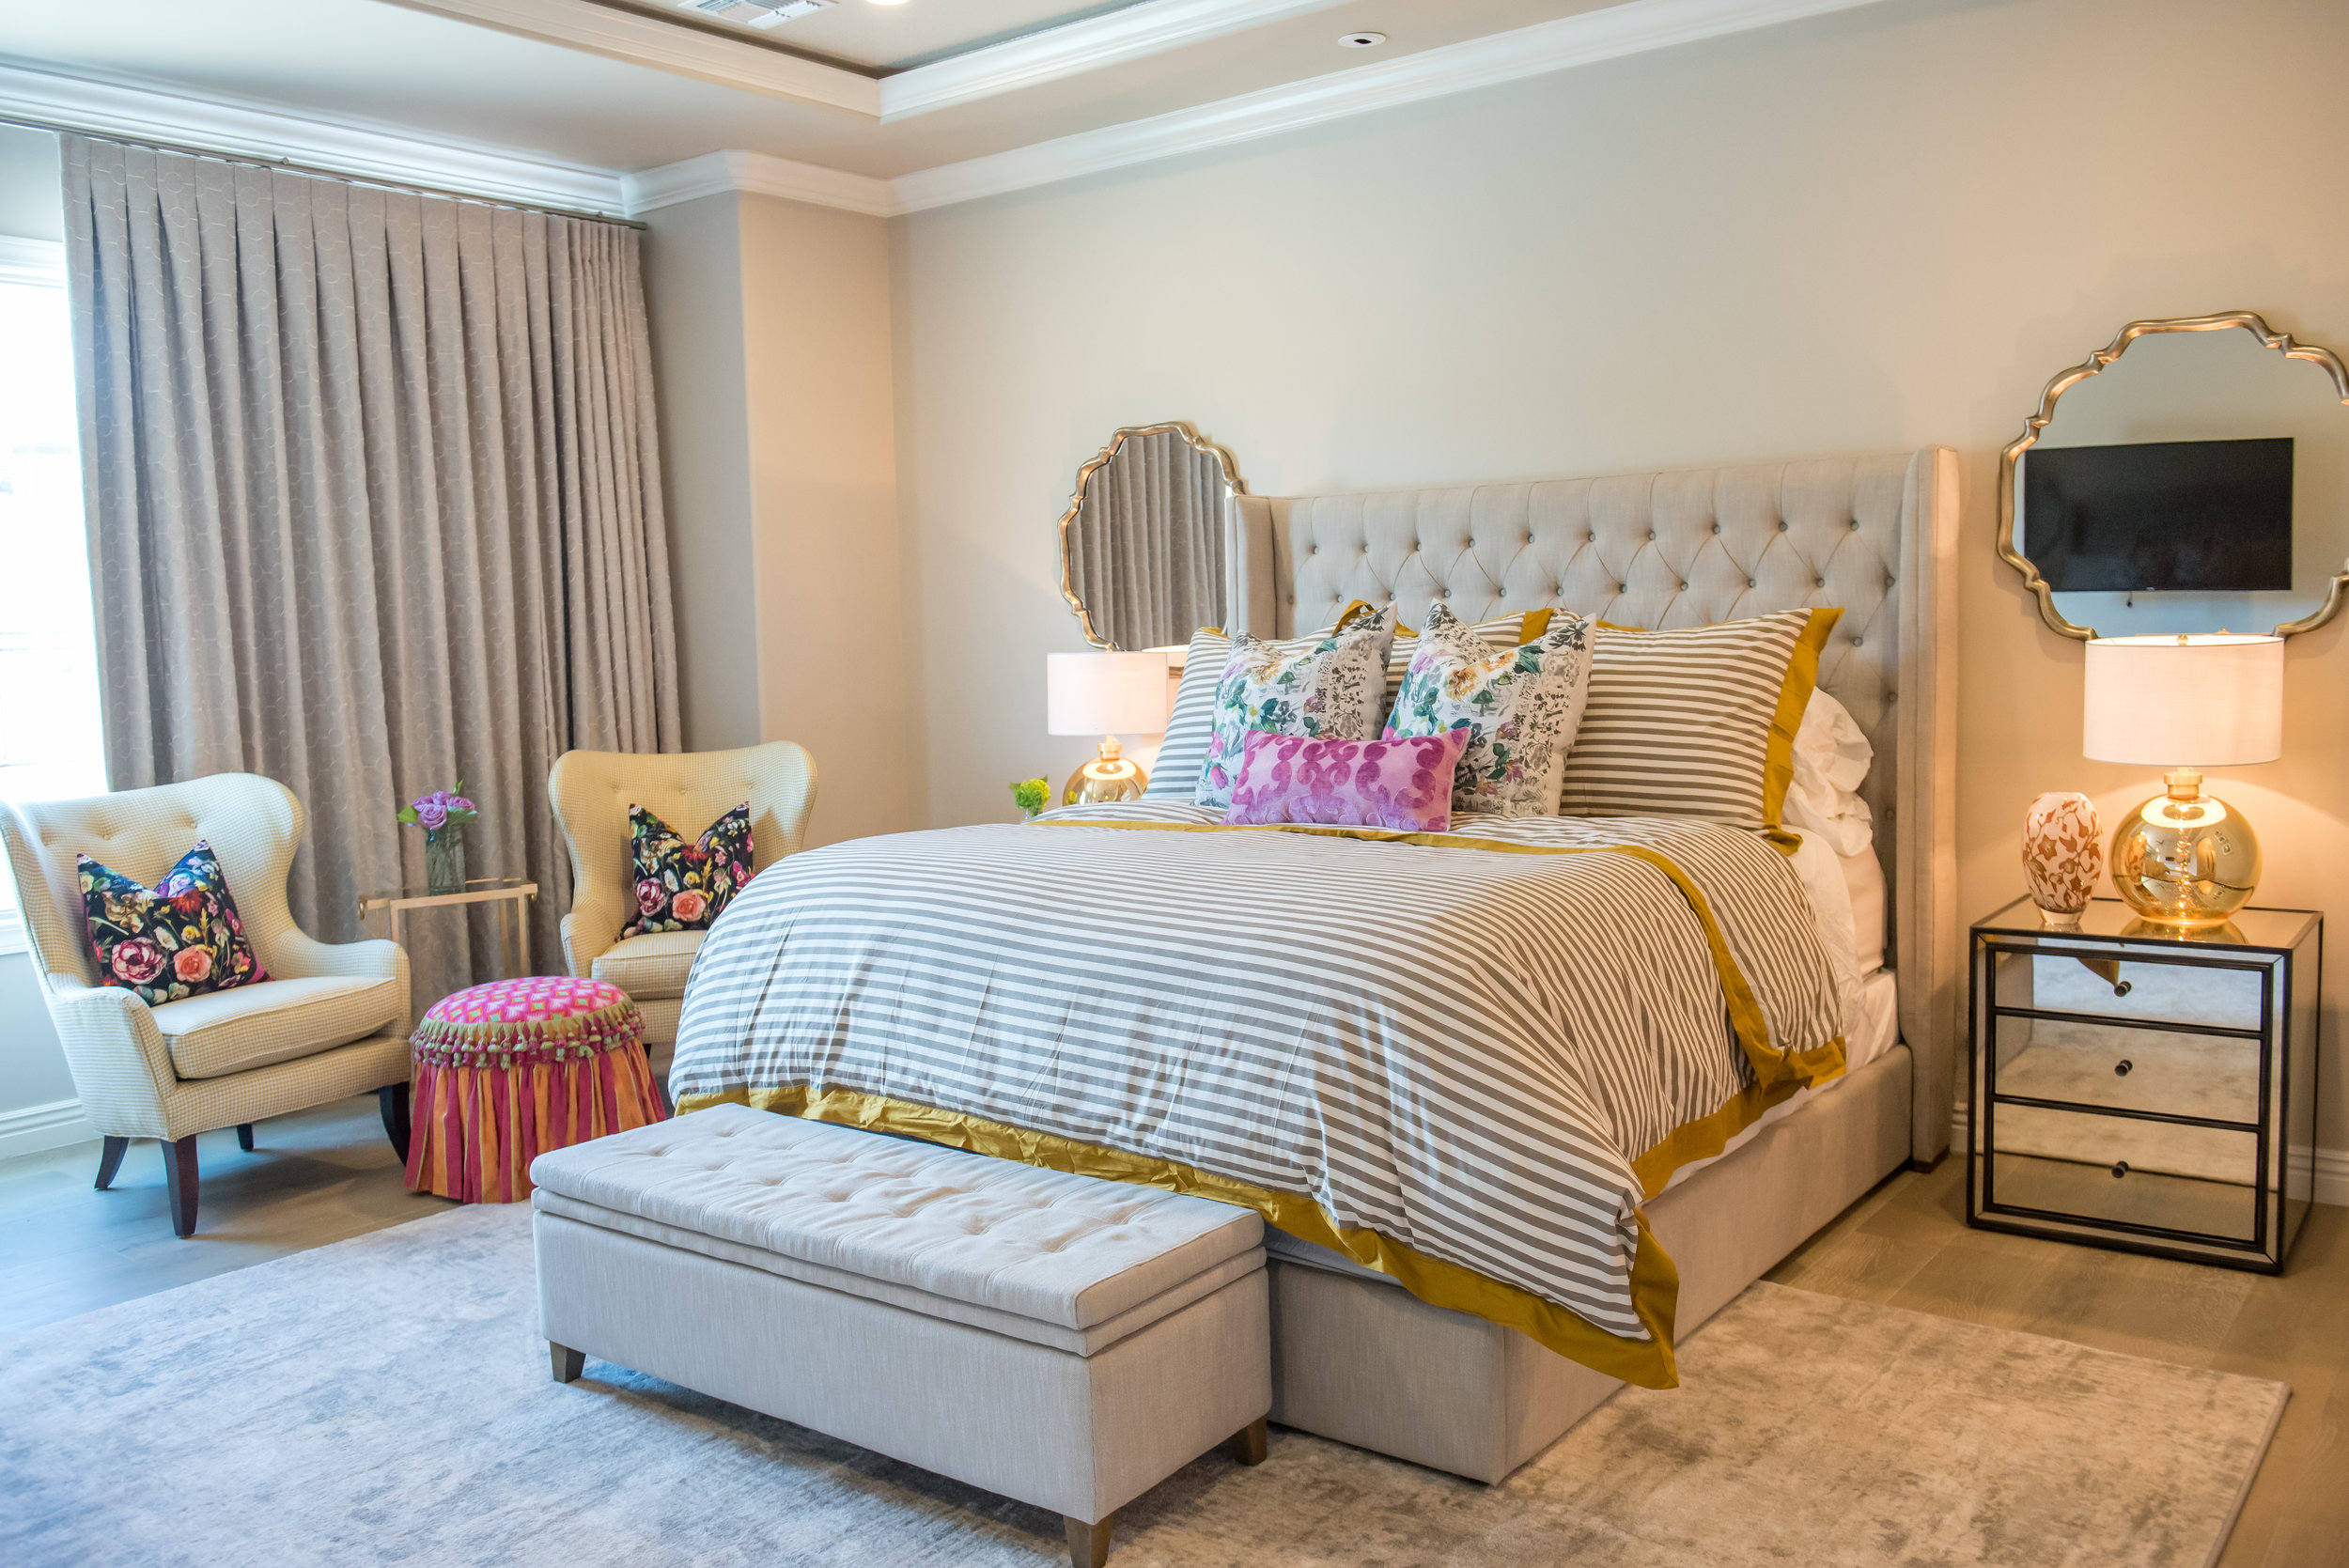 28 Masterbed+Scottsdale+transitional+floral+yellow+pink.jpg